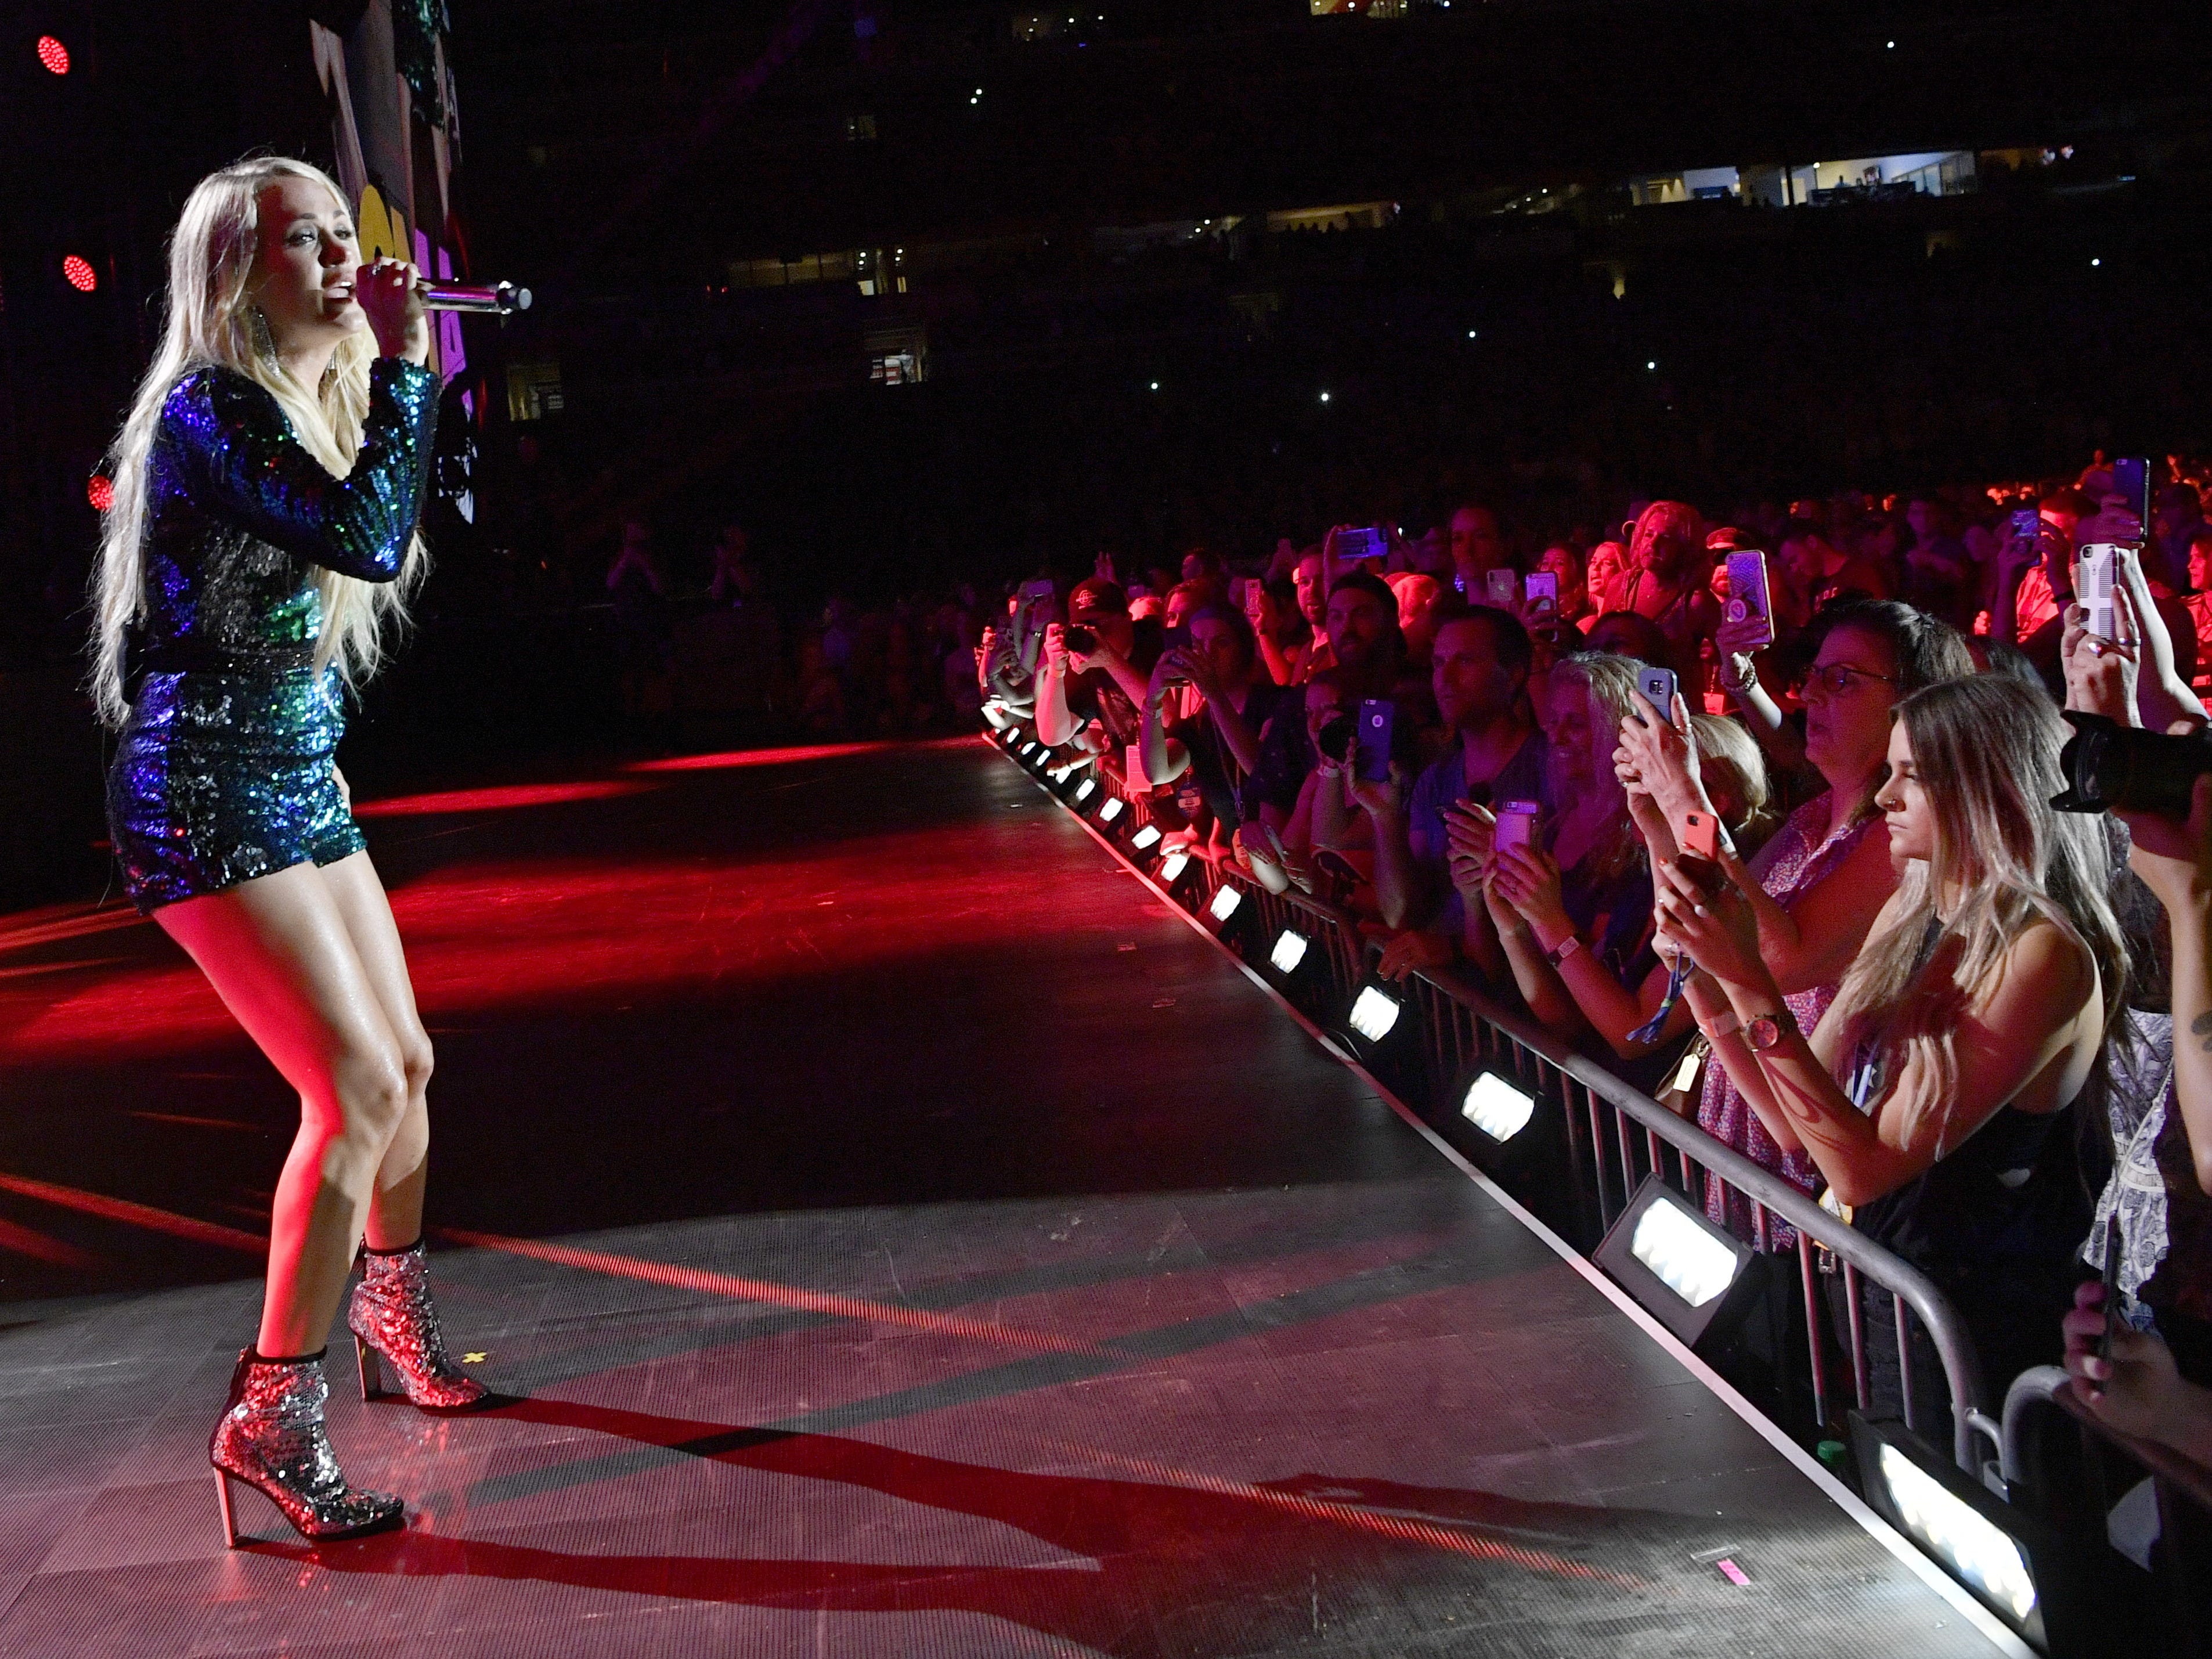 Carrie Underwood is scheduled to play Nissan Stadium during CMA Fest 2019.